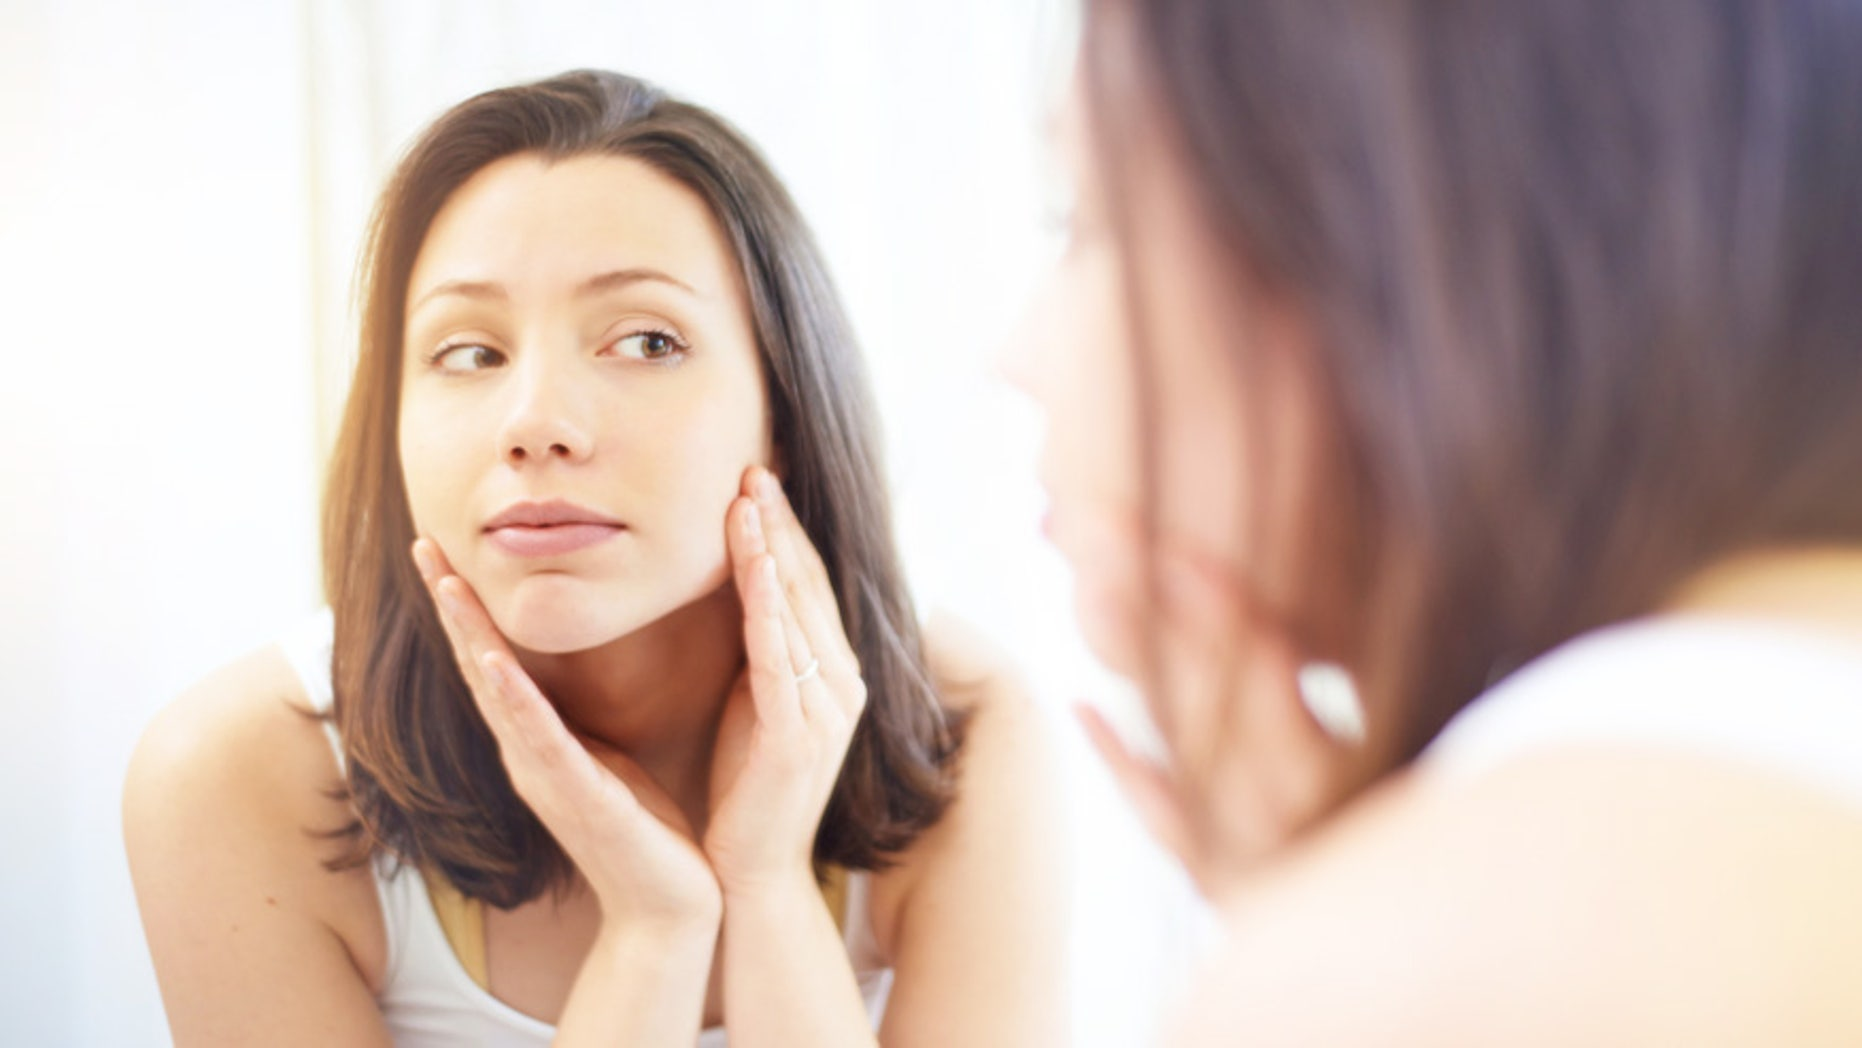 The 'caveman regimen' is a skincare trend that originated online, but experts say it can cause more harm than good.